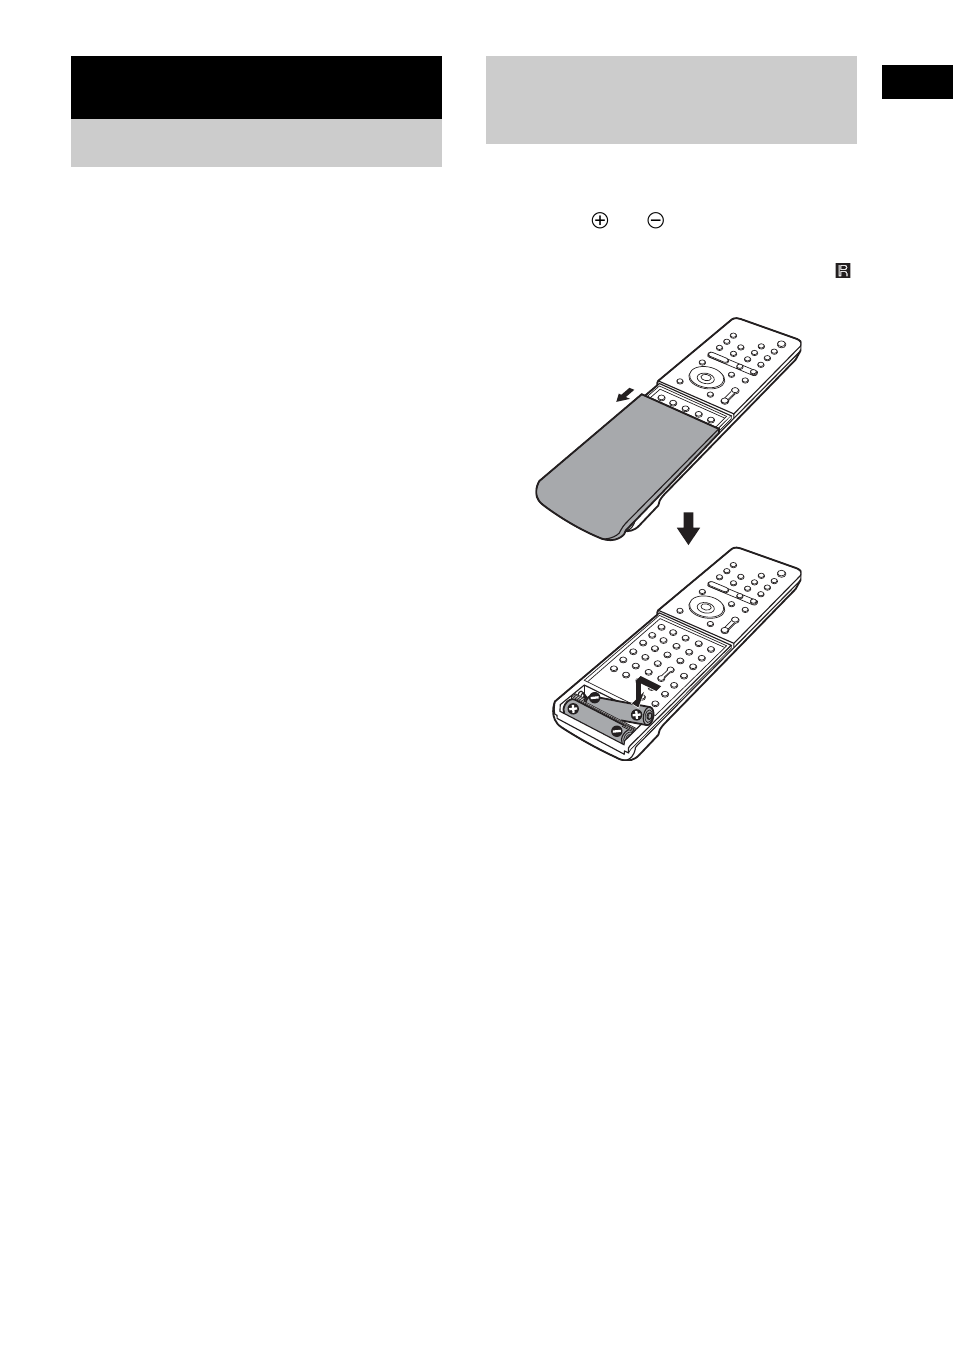 Getting Started Unpacking Inserting Batteries Into The Remote Ir Receiver For Sony Remotes Dav Sr4w User Manual Page 11 108